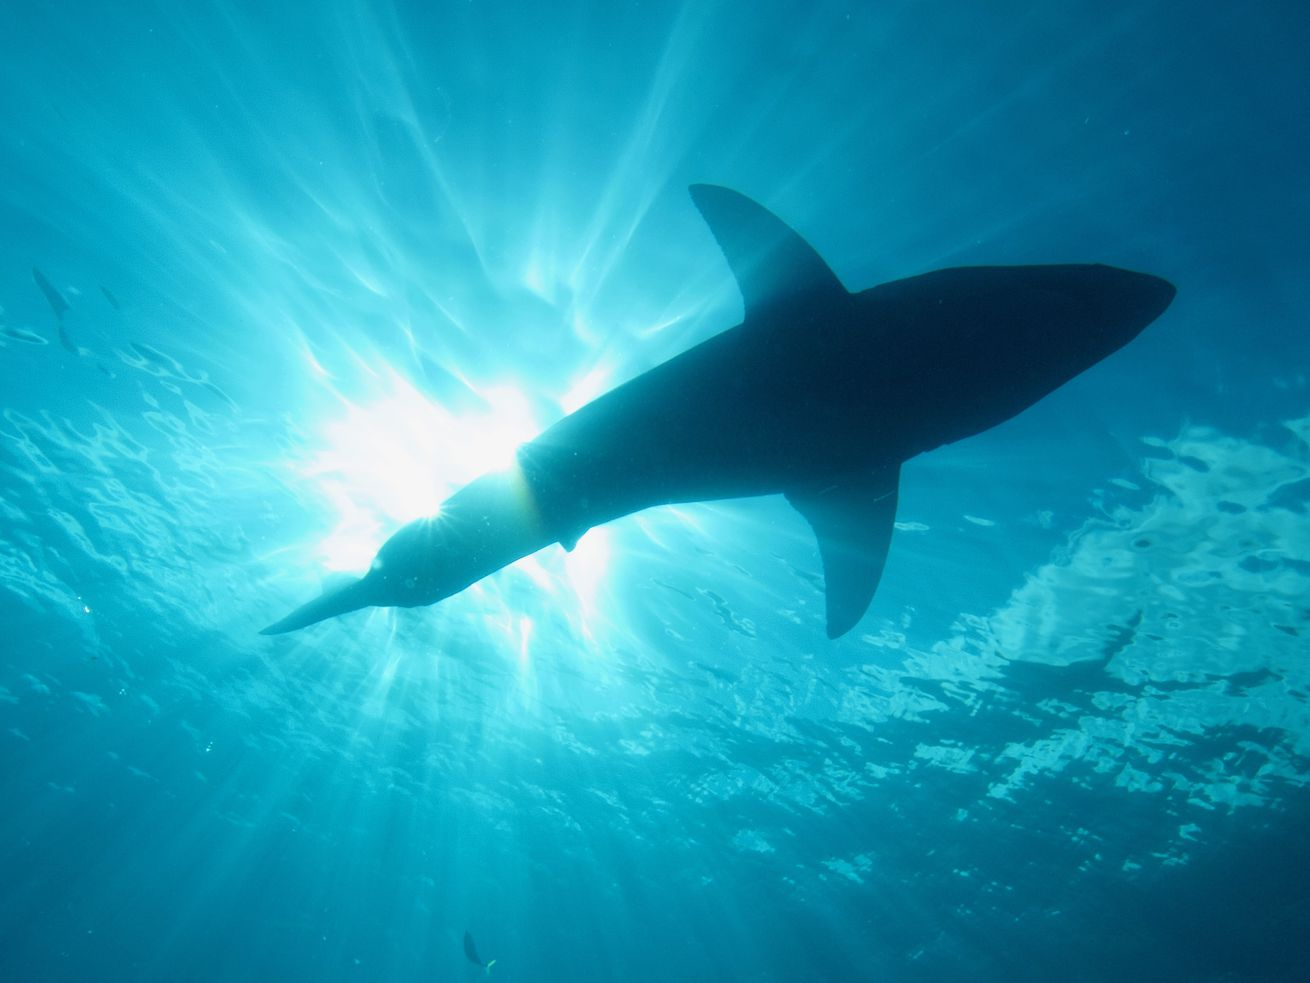 Sharks that can walk exist, and scientists discovered 4 new species of them near Australia